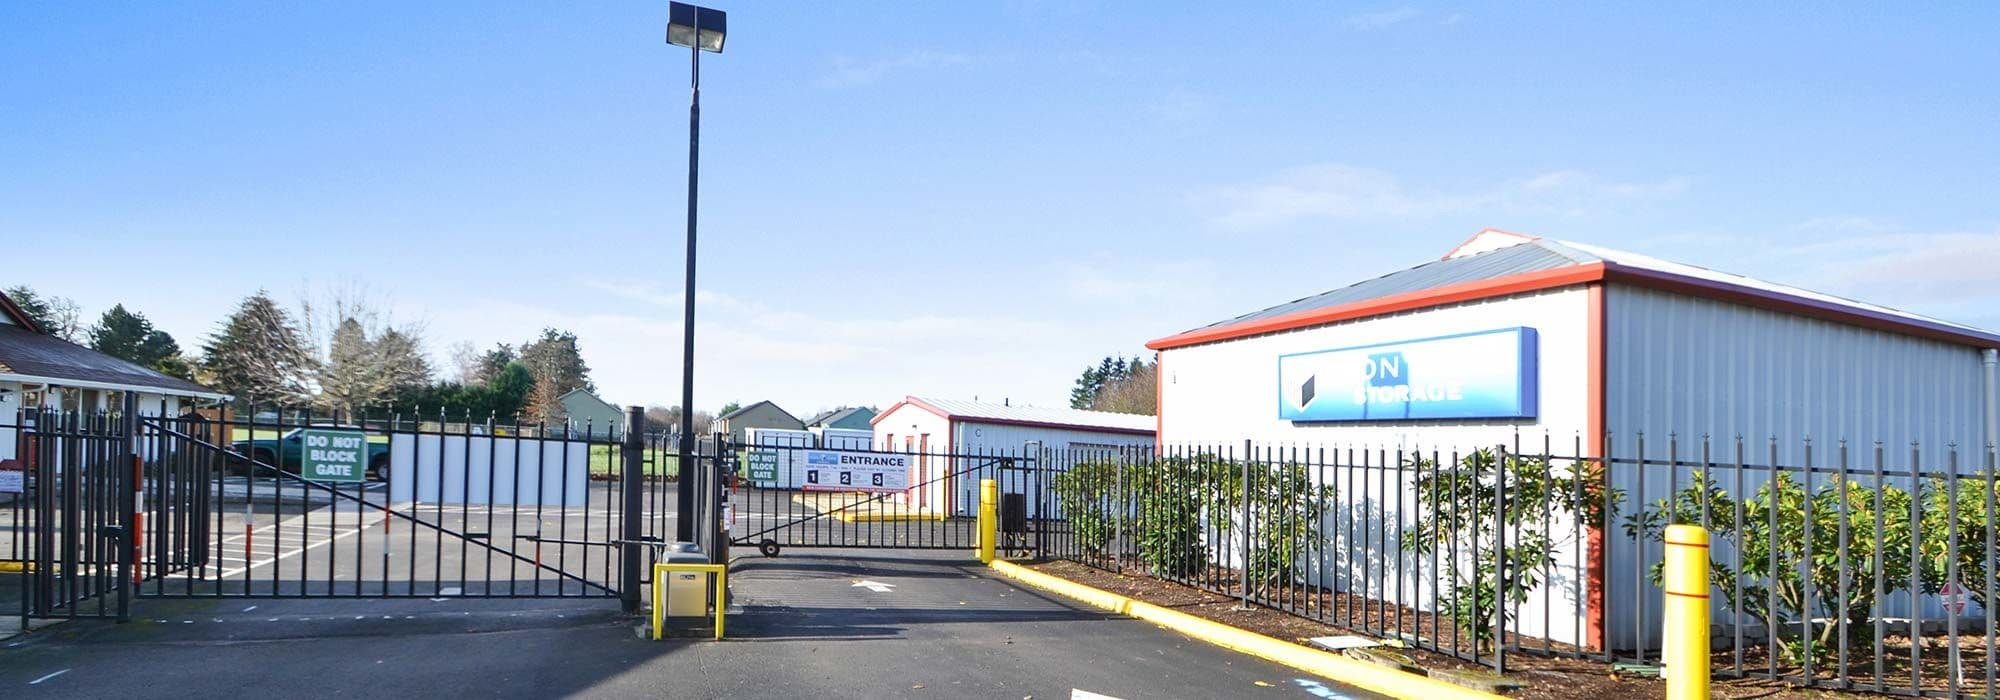 Self storage in Vancouver WA